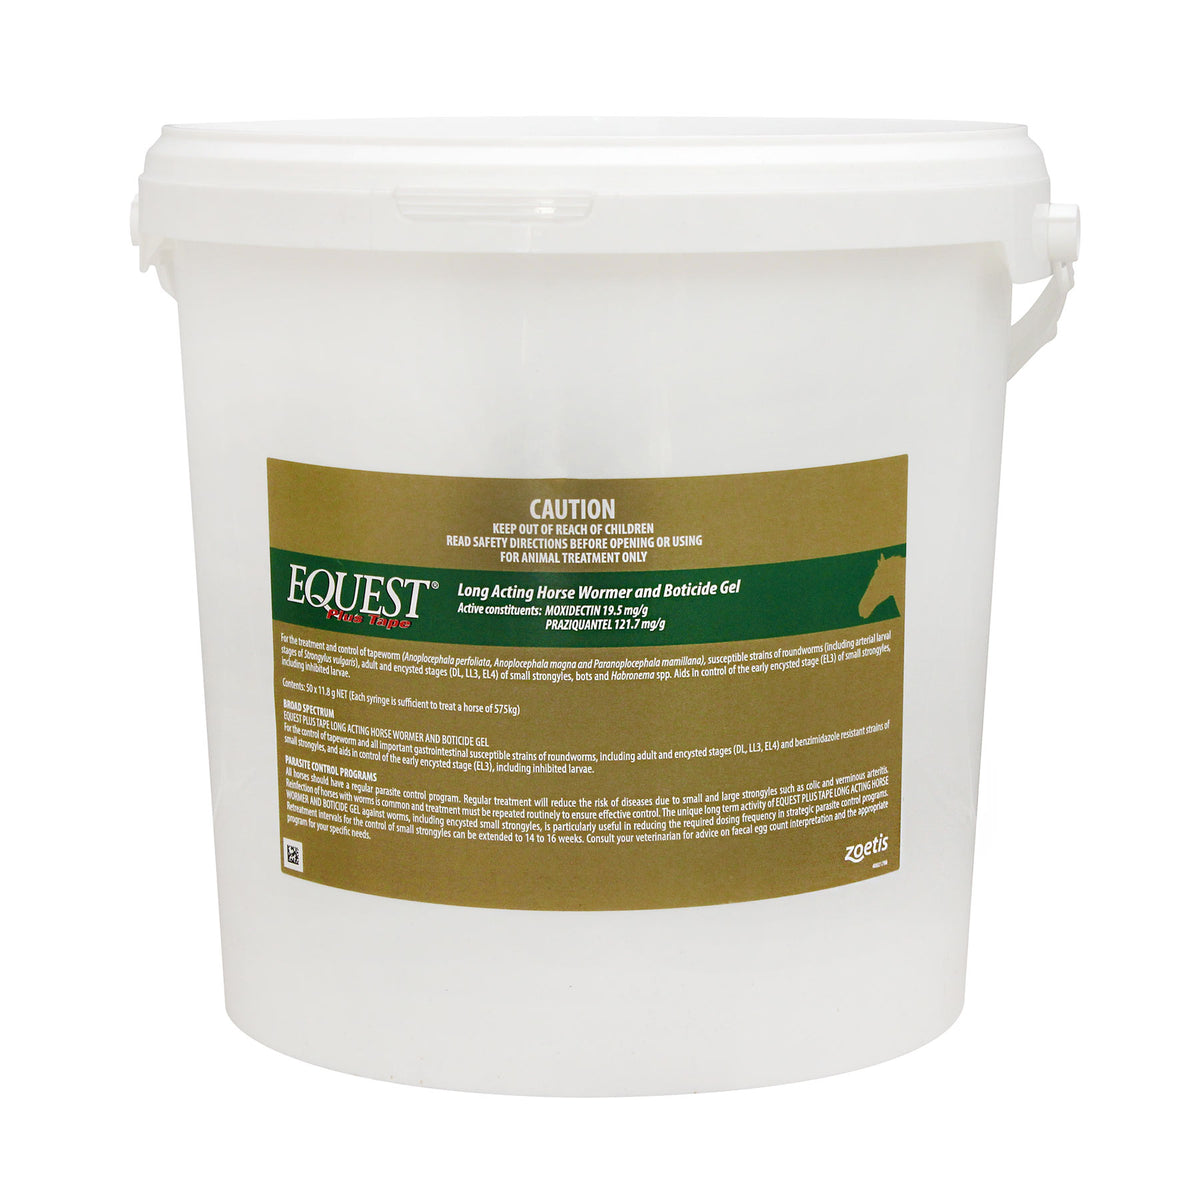 Equest Plus Tape Long Acting Horse Wormer Stud Bucket 50 Tubes